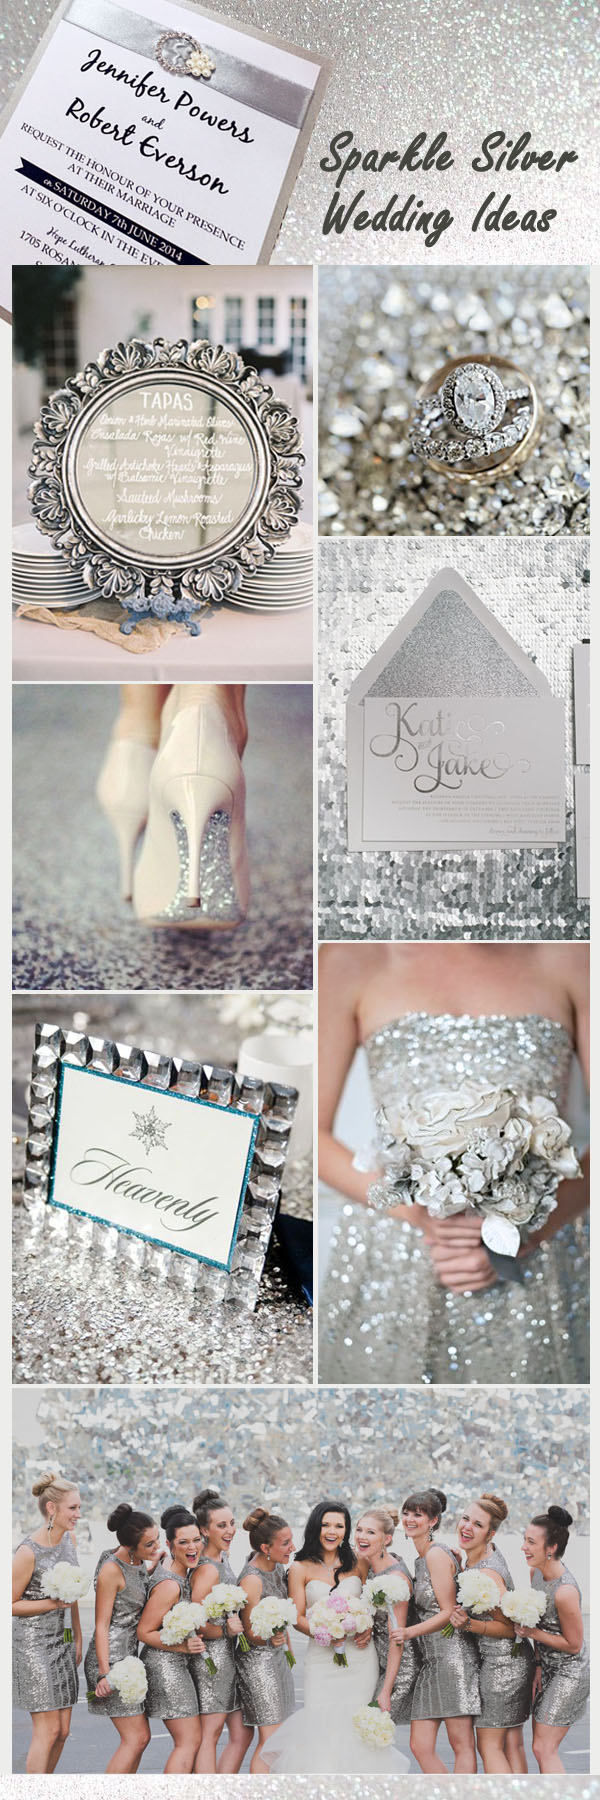 Top Ten Wedding Theme Ideas With Beautiful Invitations-Part Two ...